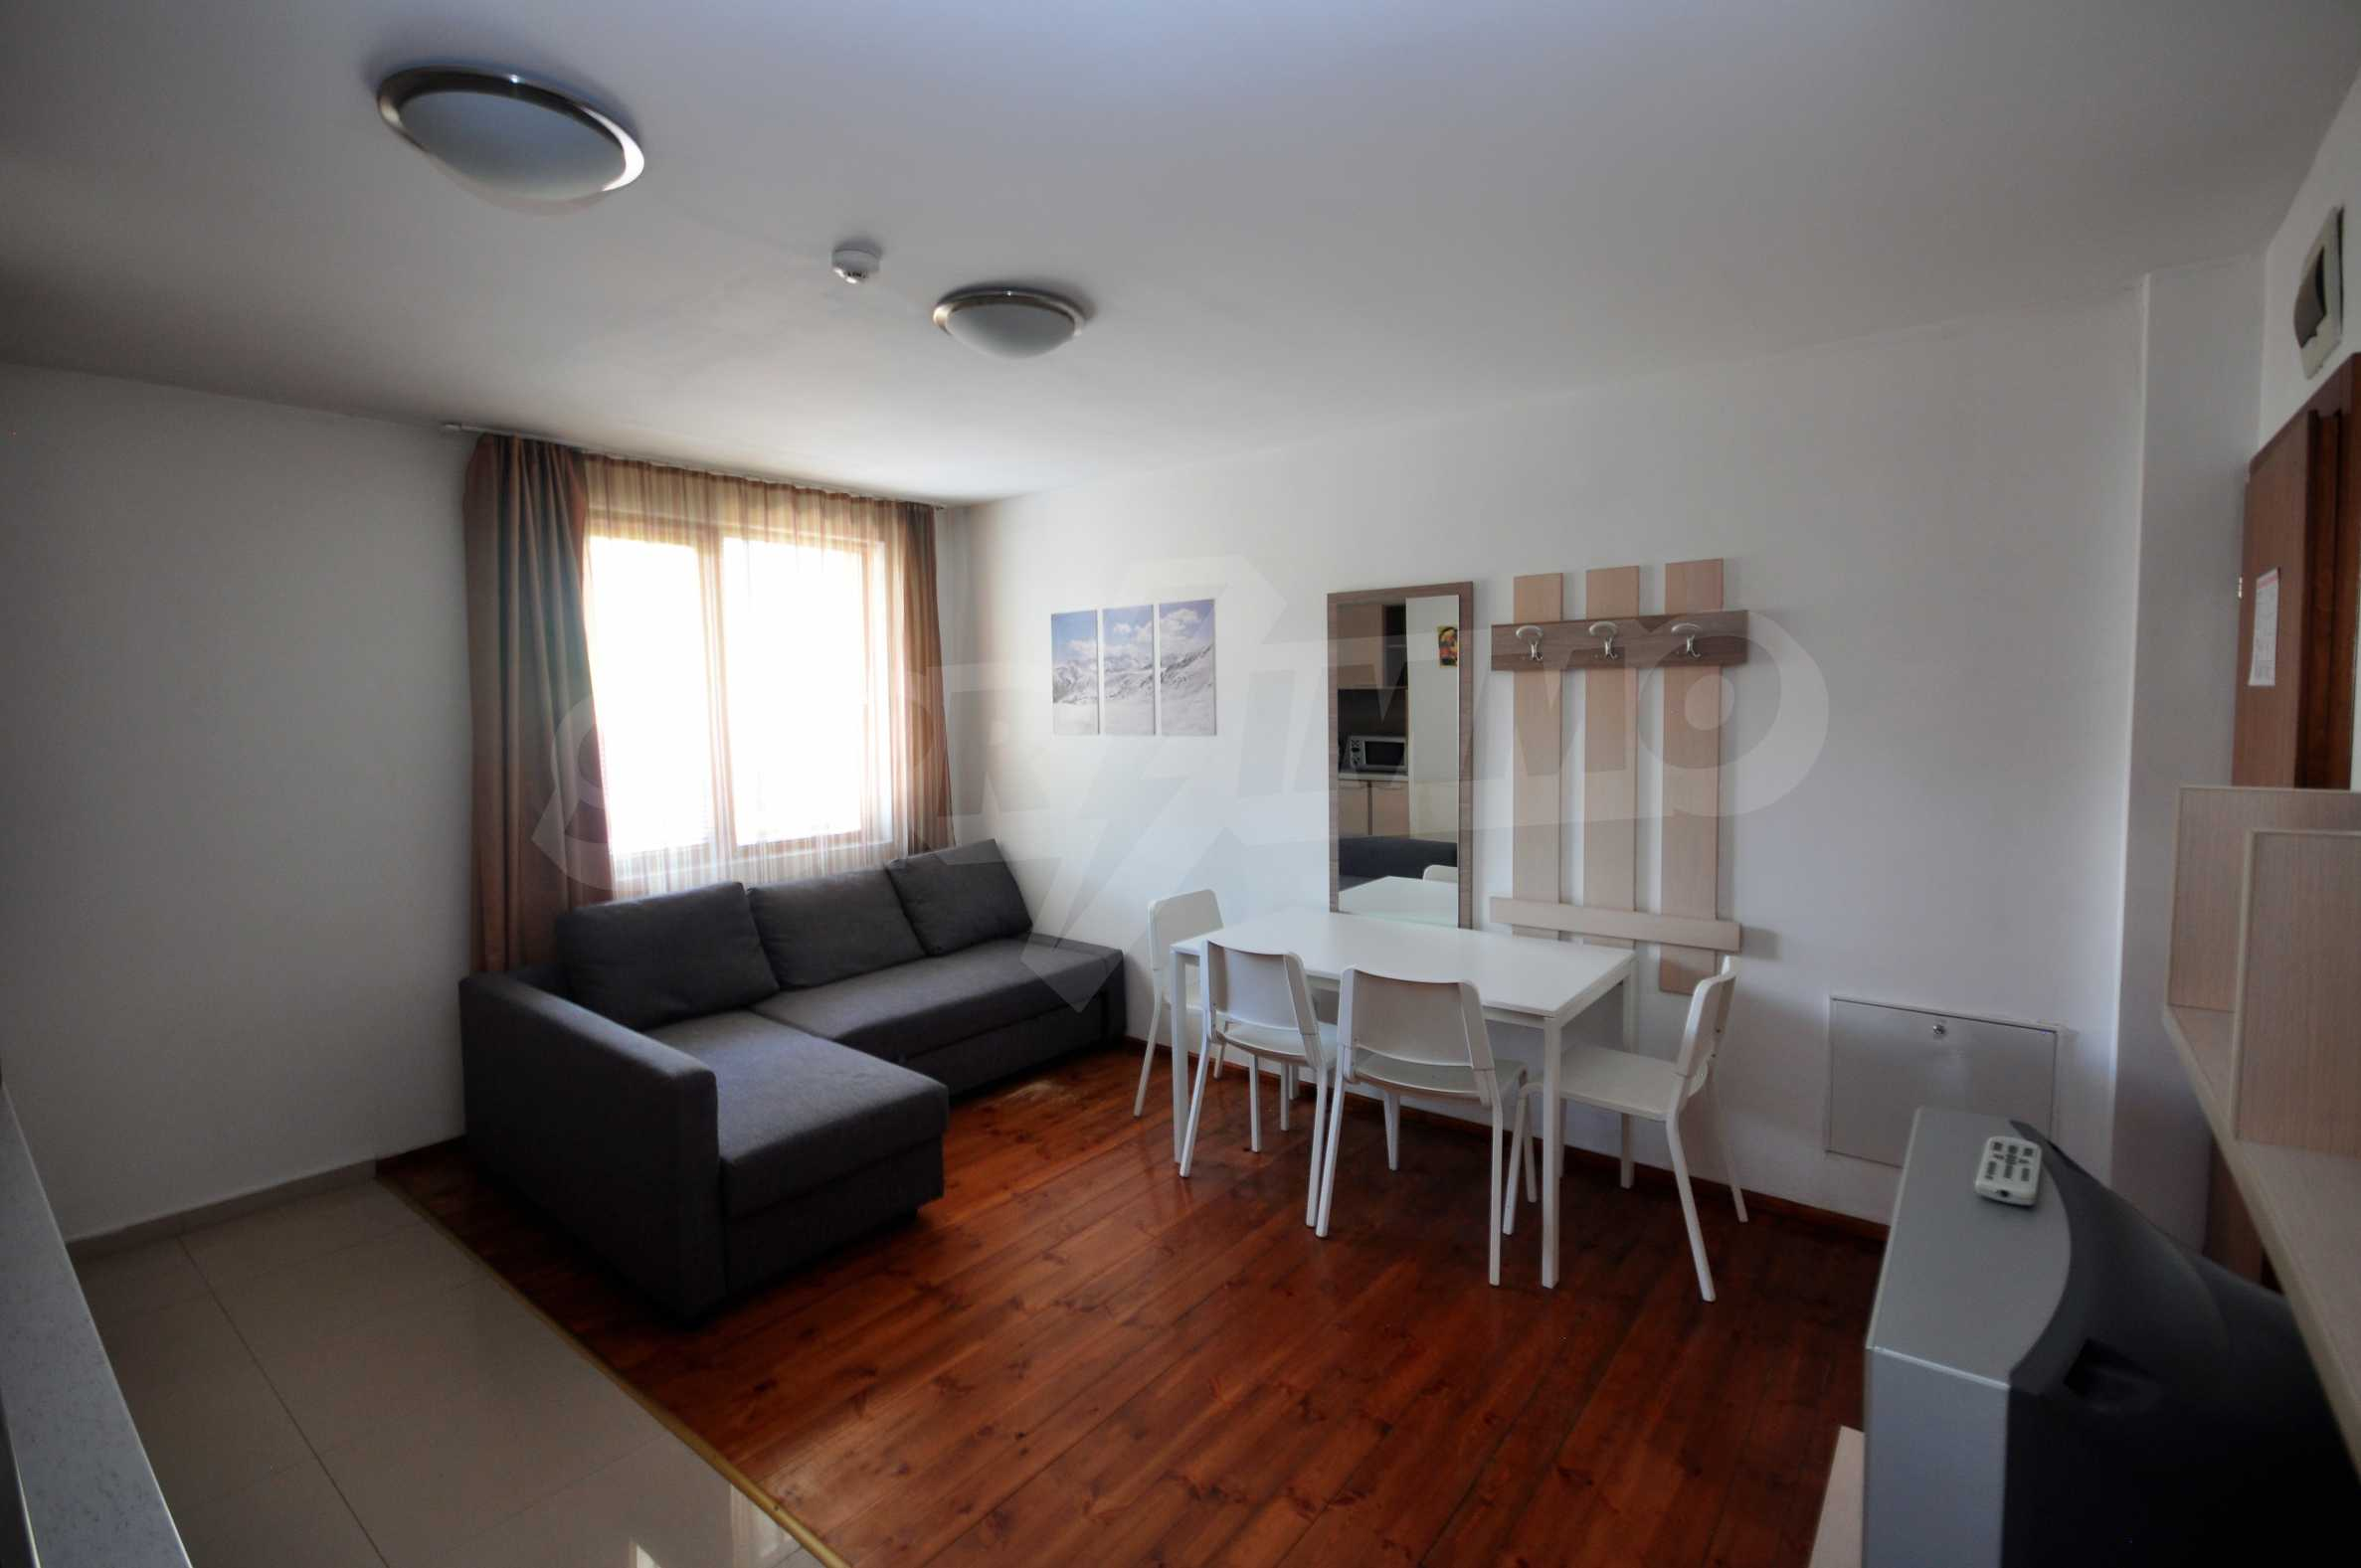 One bedroom apartment meters from the lift in the town of Bansko 5